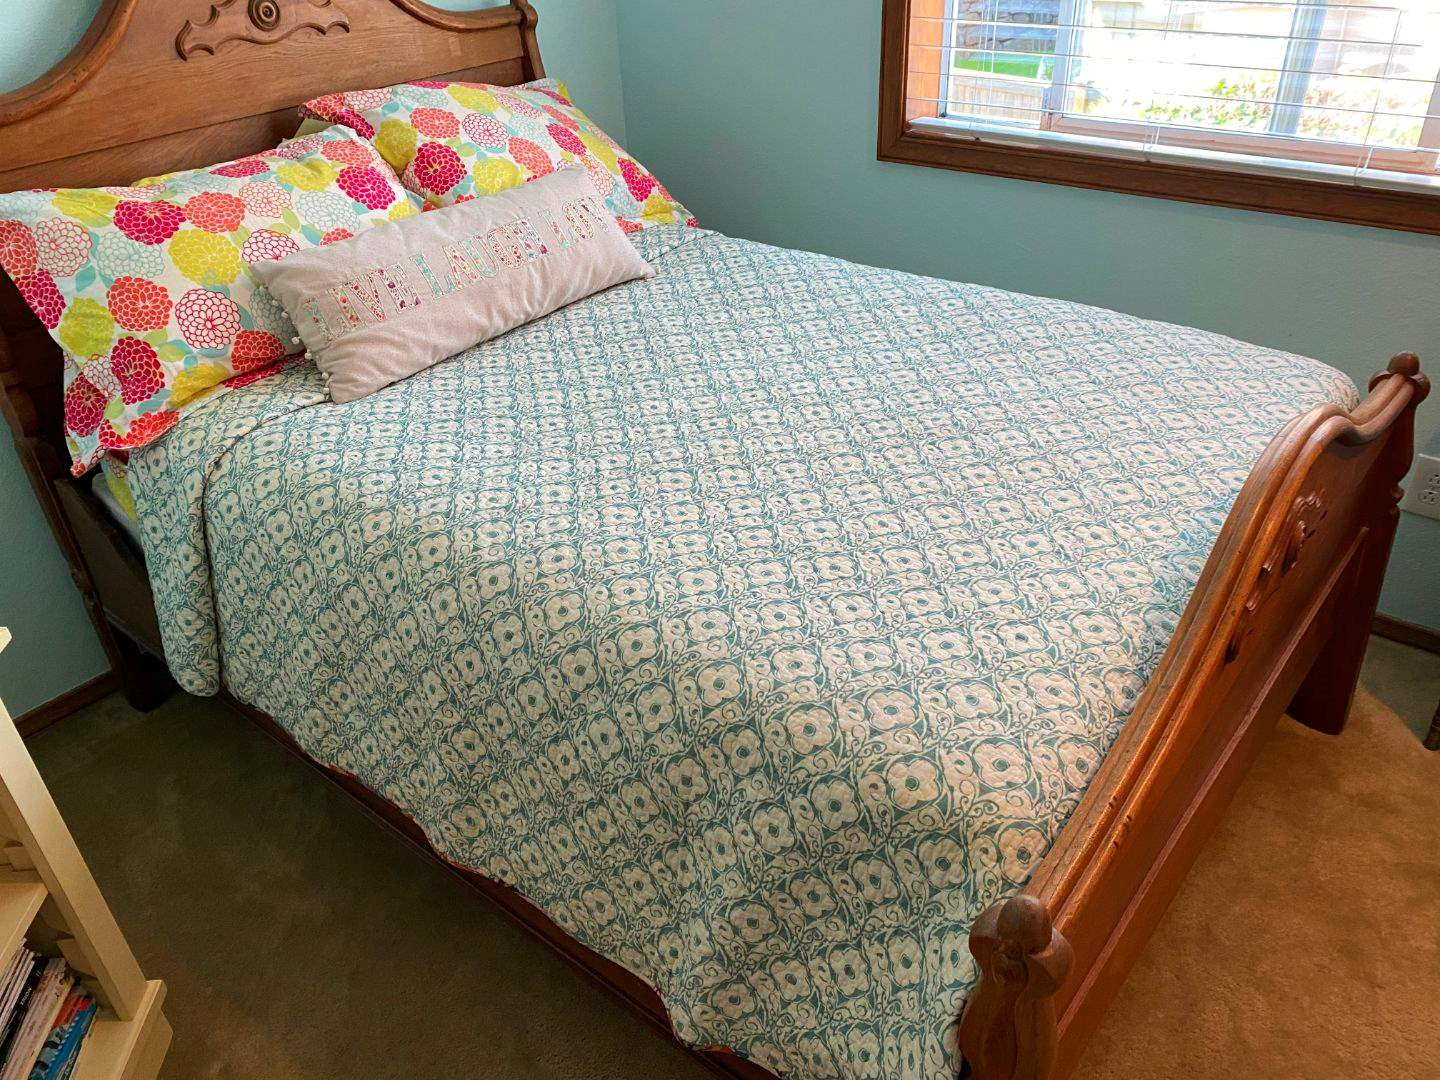 Lot # 113 - Full/Double Size Bedding: Quilt, Pillows, Sheets, Down Mattress Pad (main image)